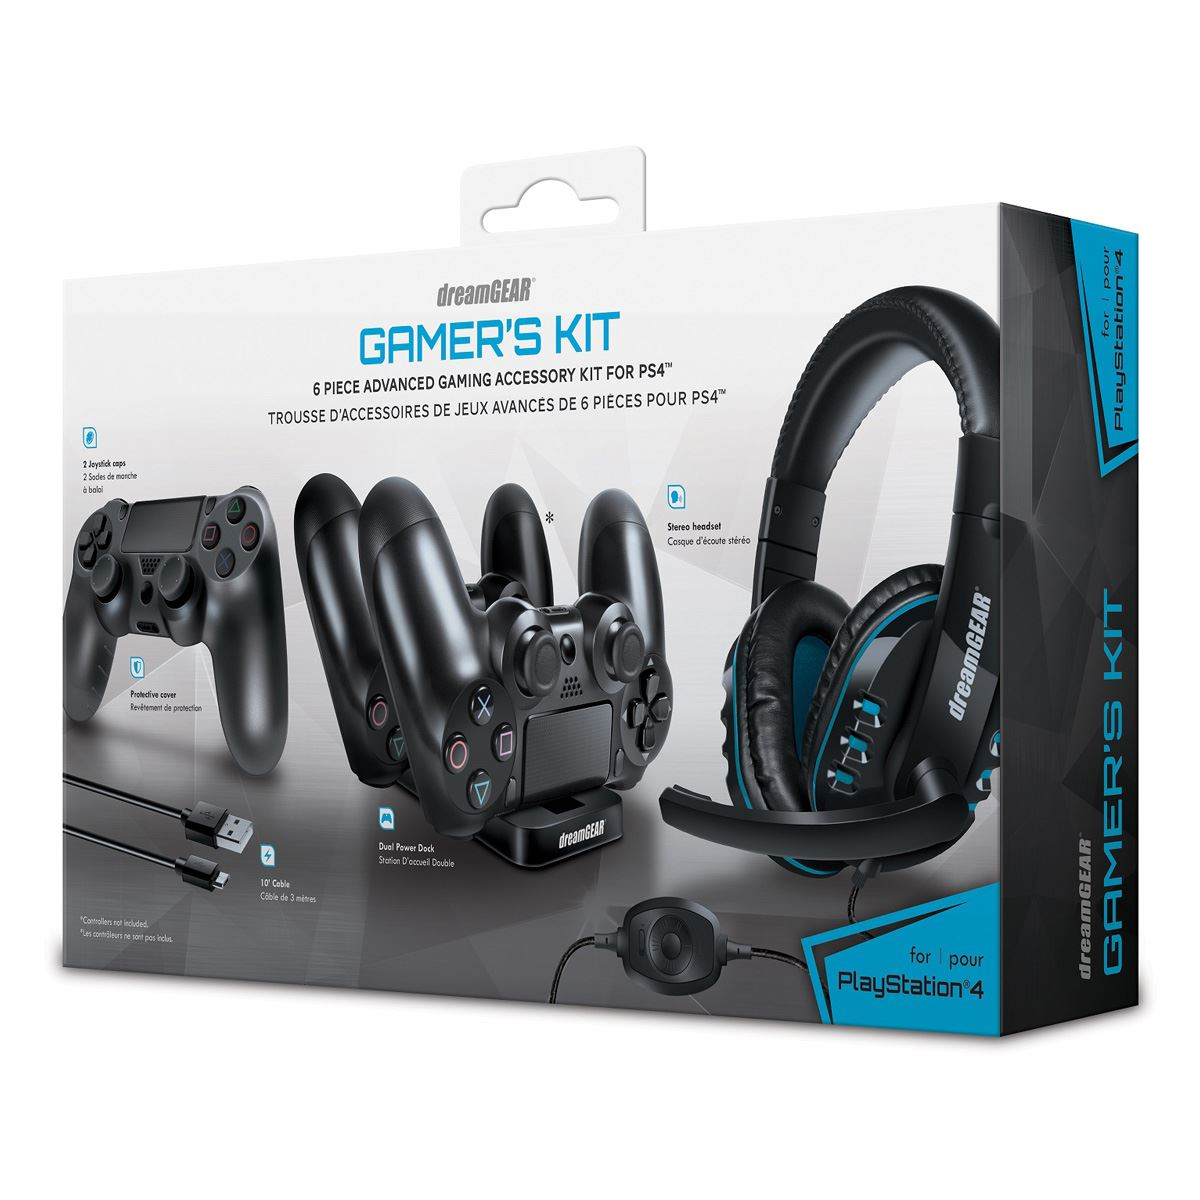 Gamer Kit Dreamgear para PlayStation 4